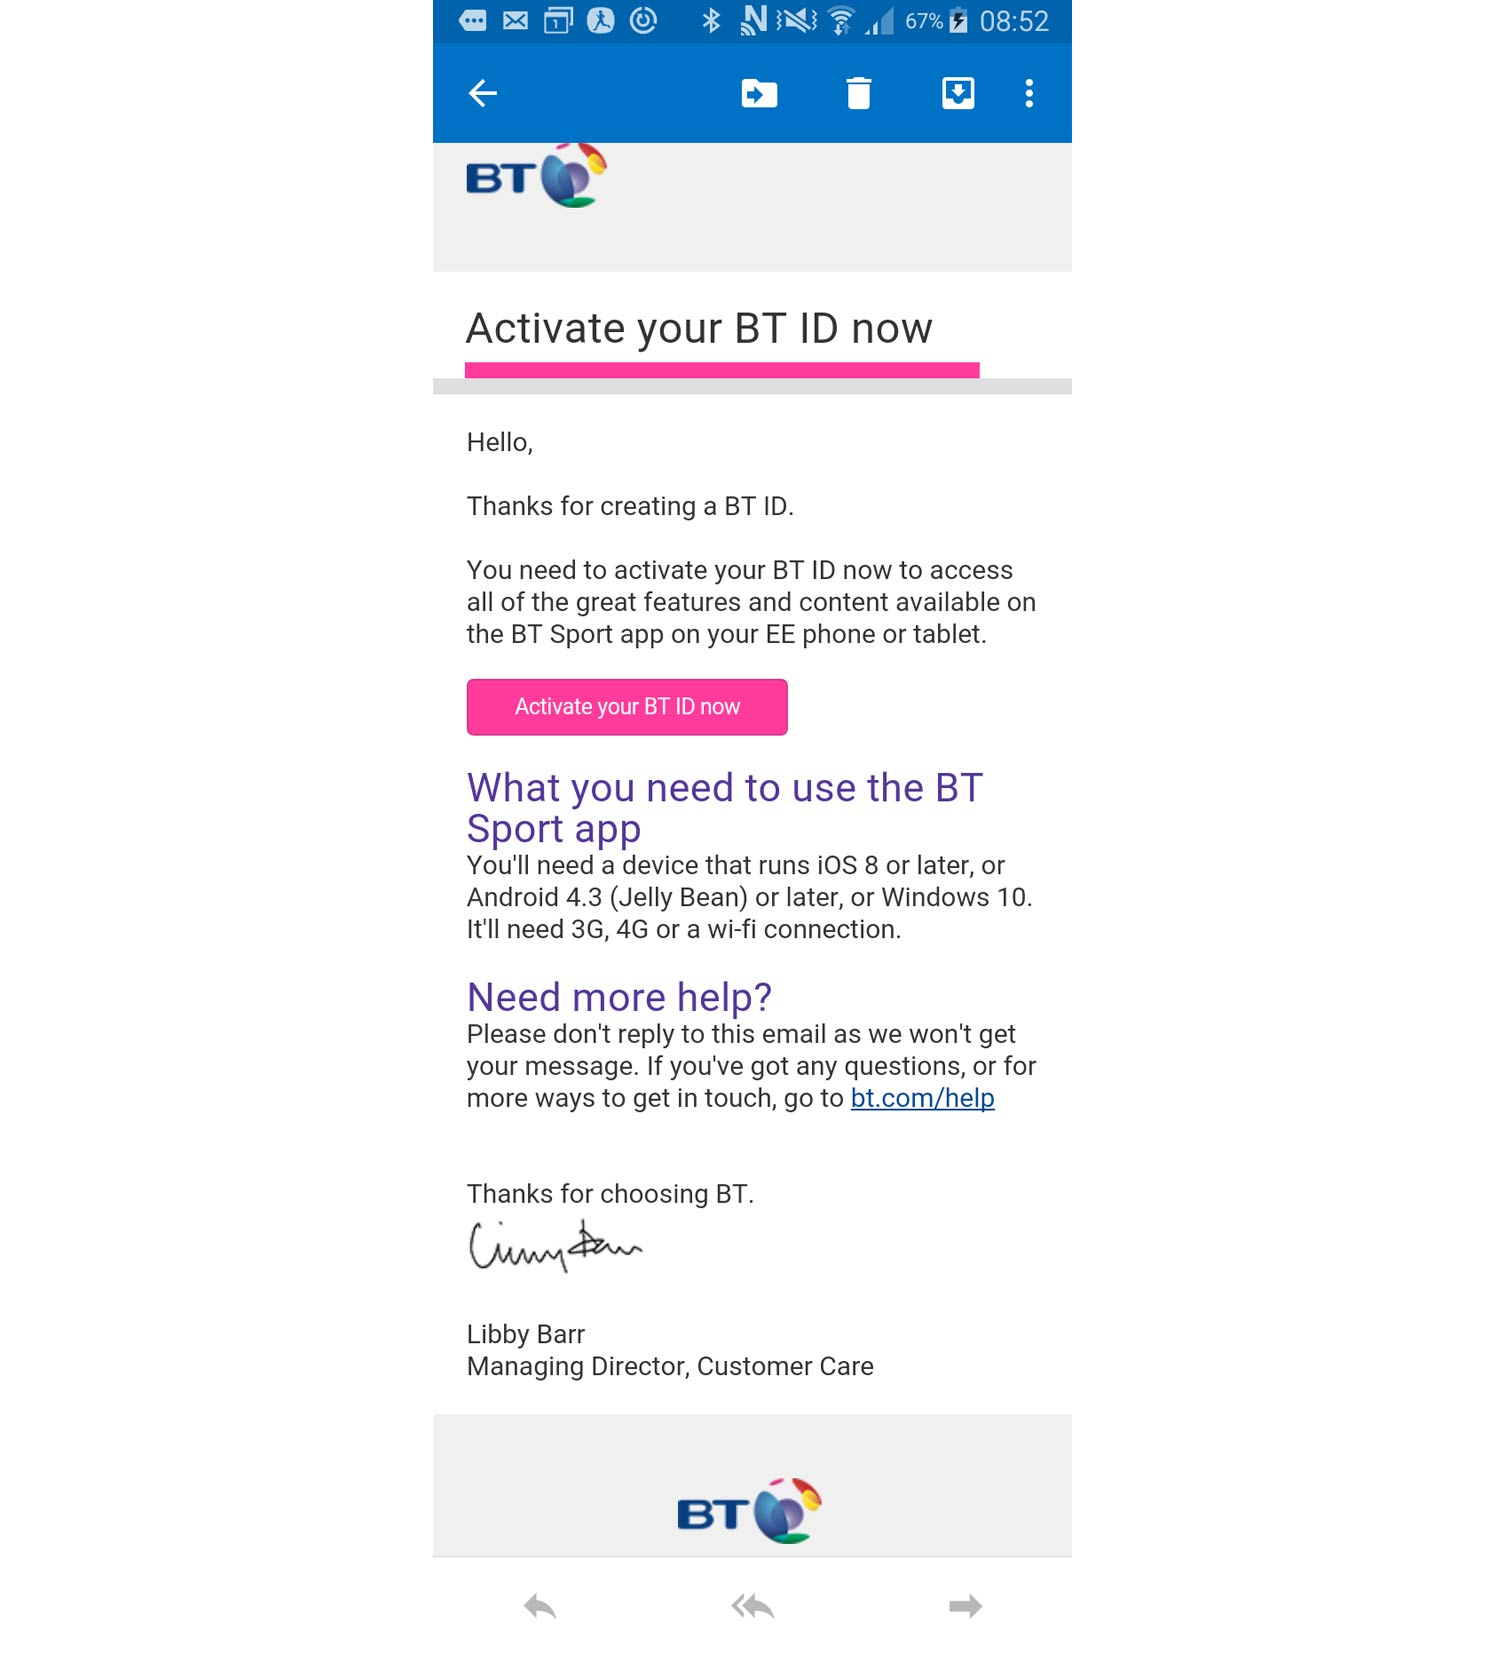 BT ID activation email